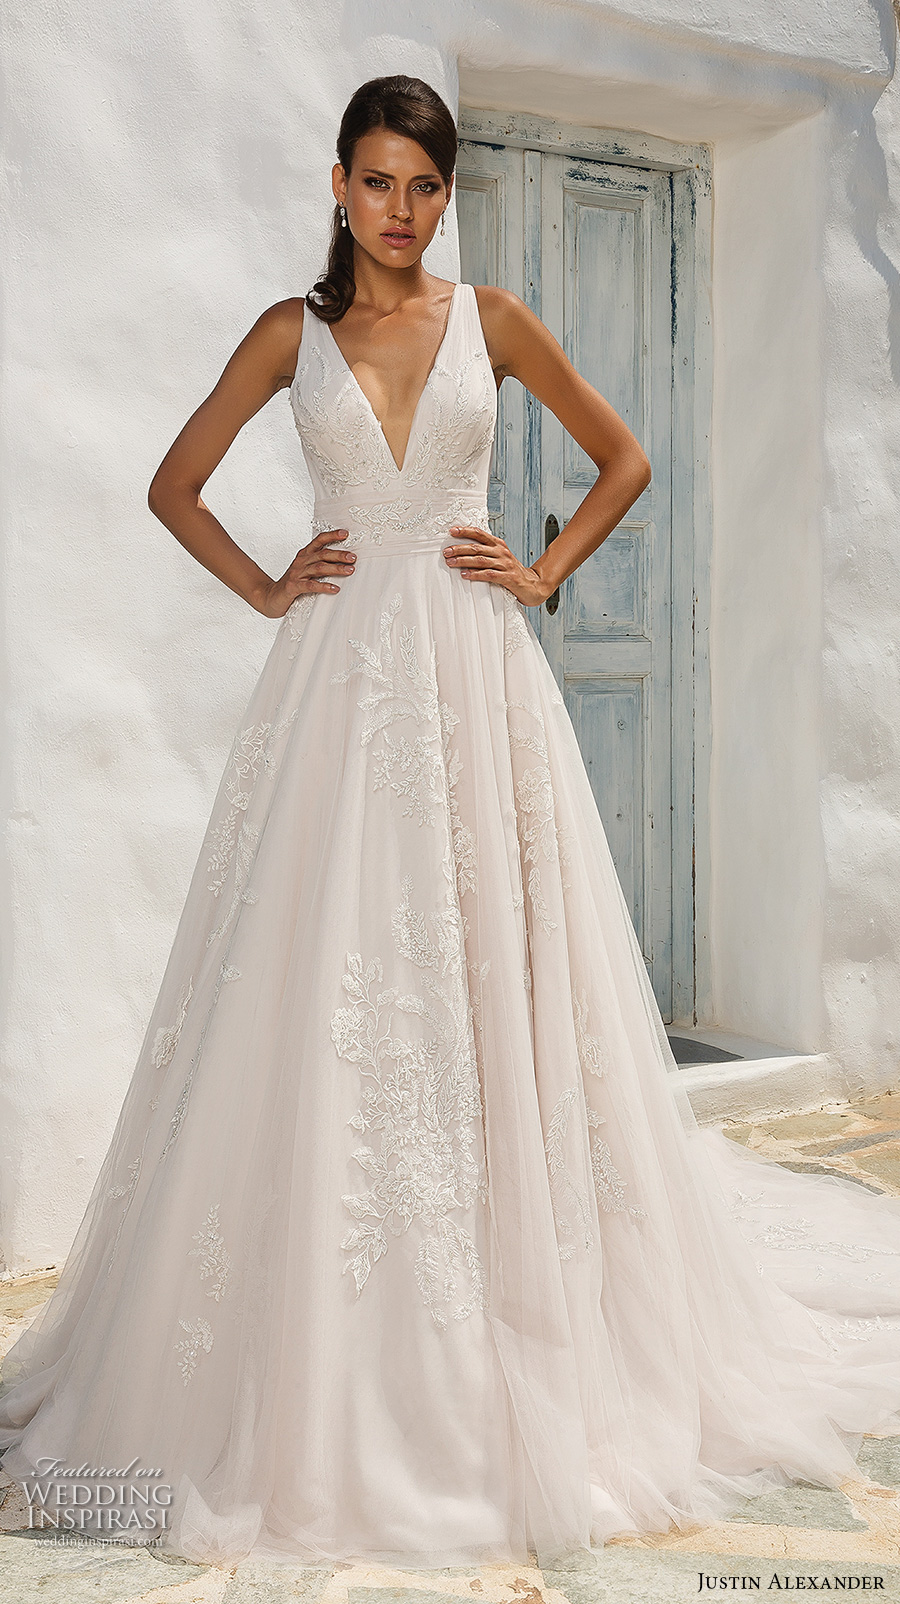 justin alexander 2018 bridal sleeveless deep v neck light embellishment romantic blush a  line wedding dress open v back chapel train (7) mv